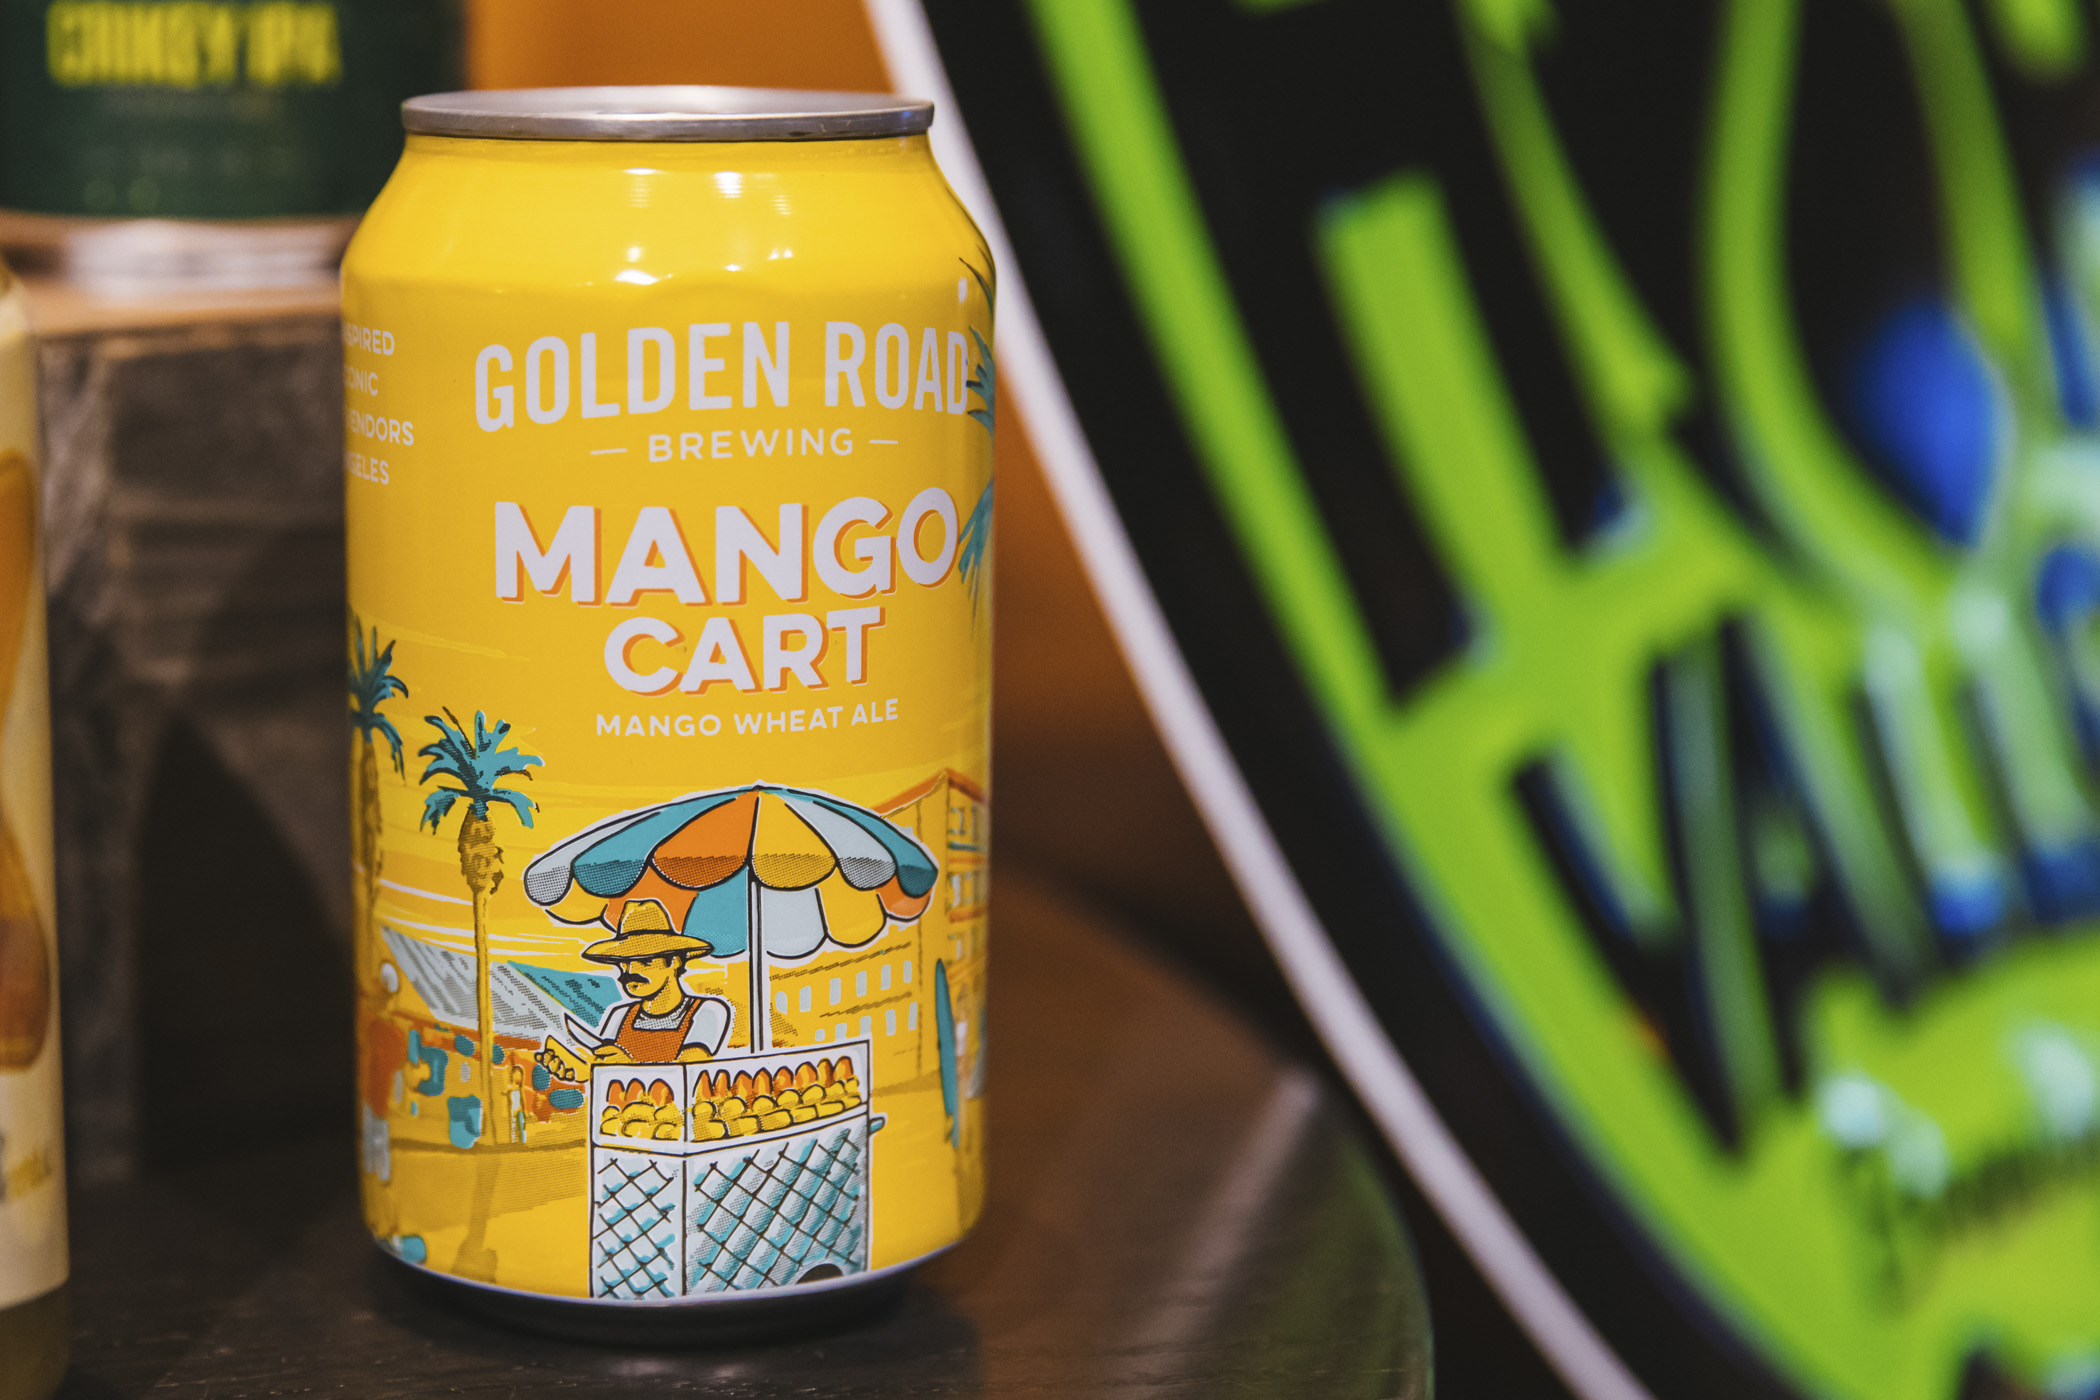 Golden Road Brewing. We snuck in a little preview of the beer, wine and spirits offerings for the 2020 Seattle Mariners season at T-Mobile Park! Home Opener is March 26 at 1:10 p.m. agains the Rangers. Go M's! (Image: Sunita Martini / Seattle Refined)